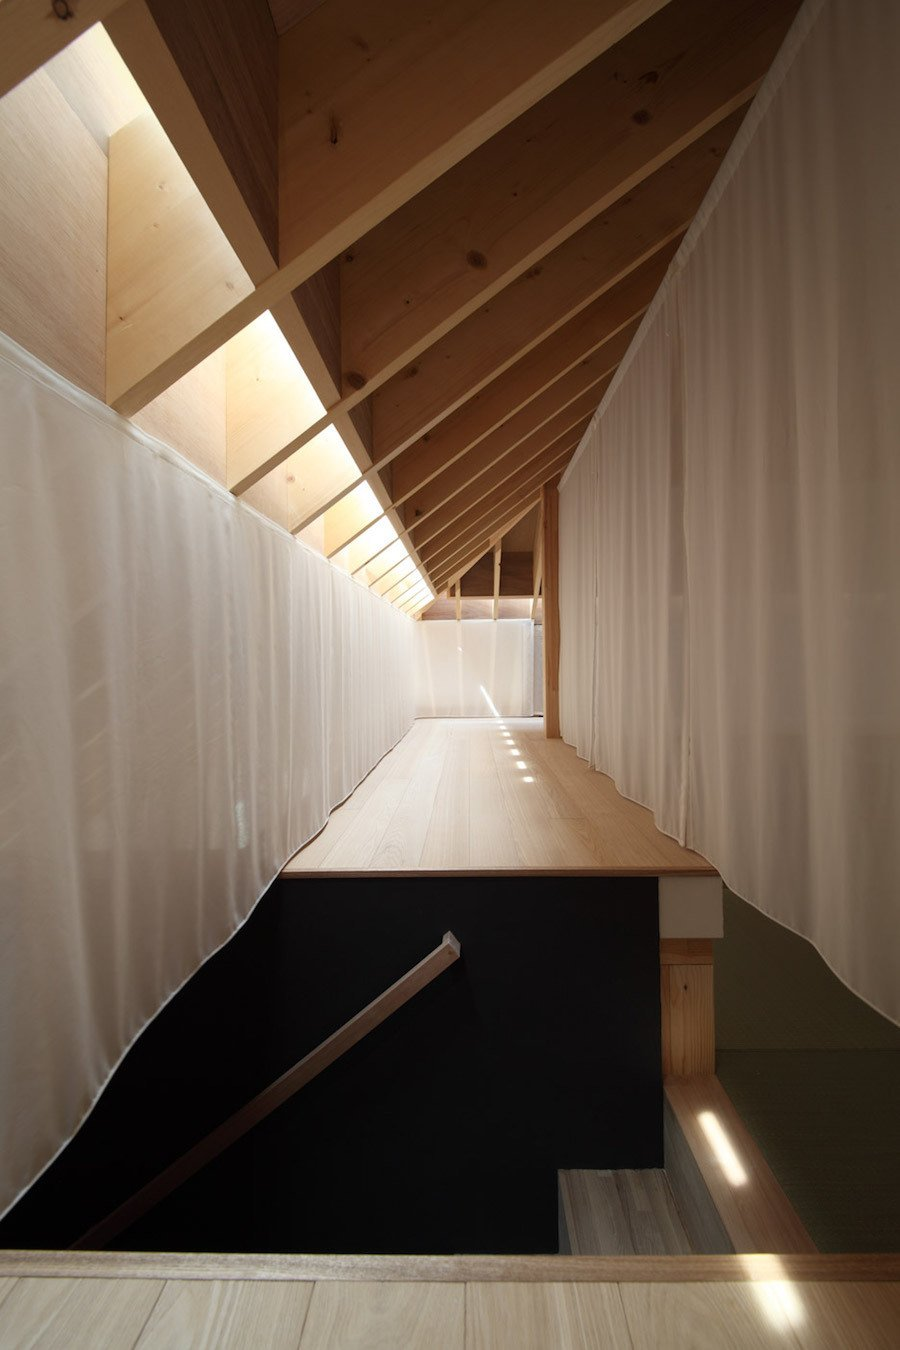 Photo 3 of 4 in Wengawa House by Katsutoshi Sasaki + Associates